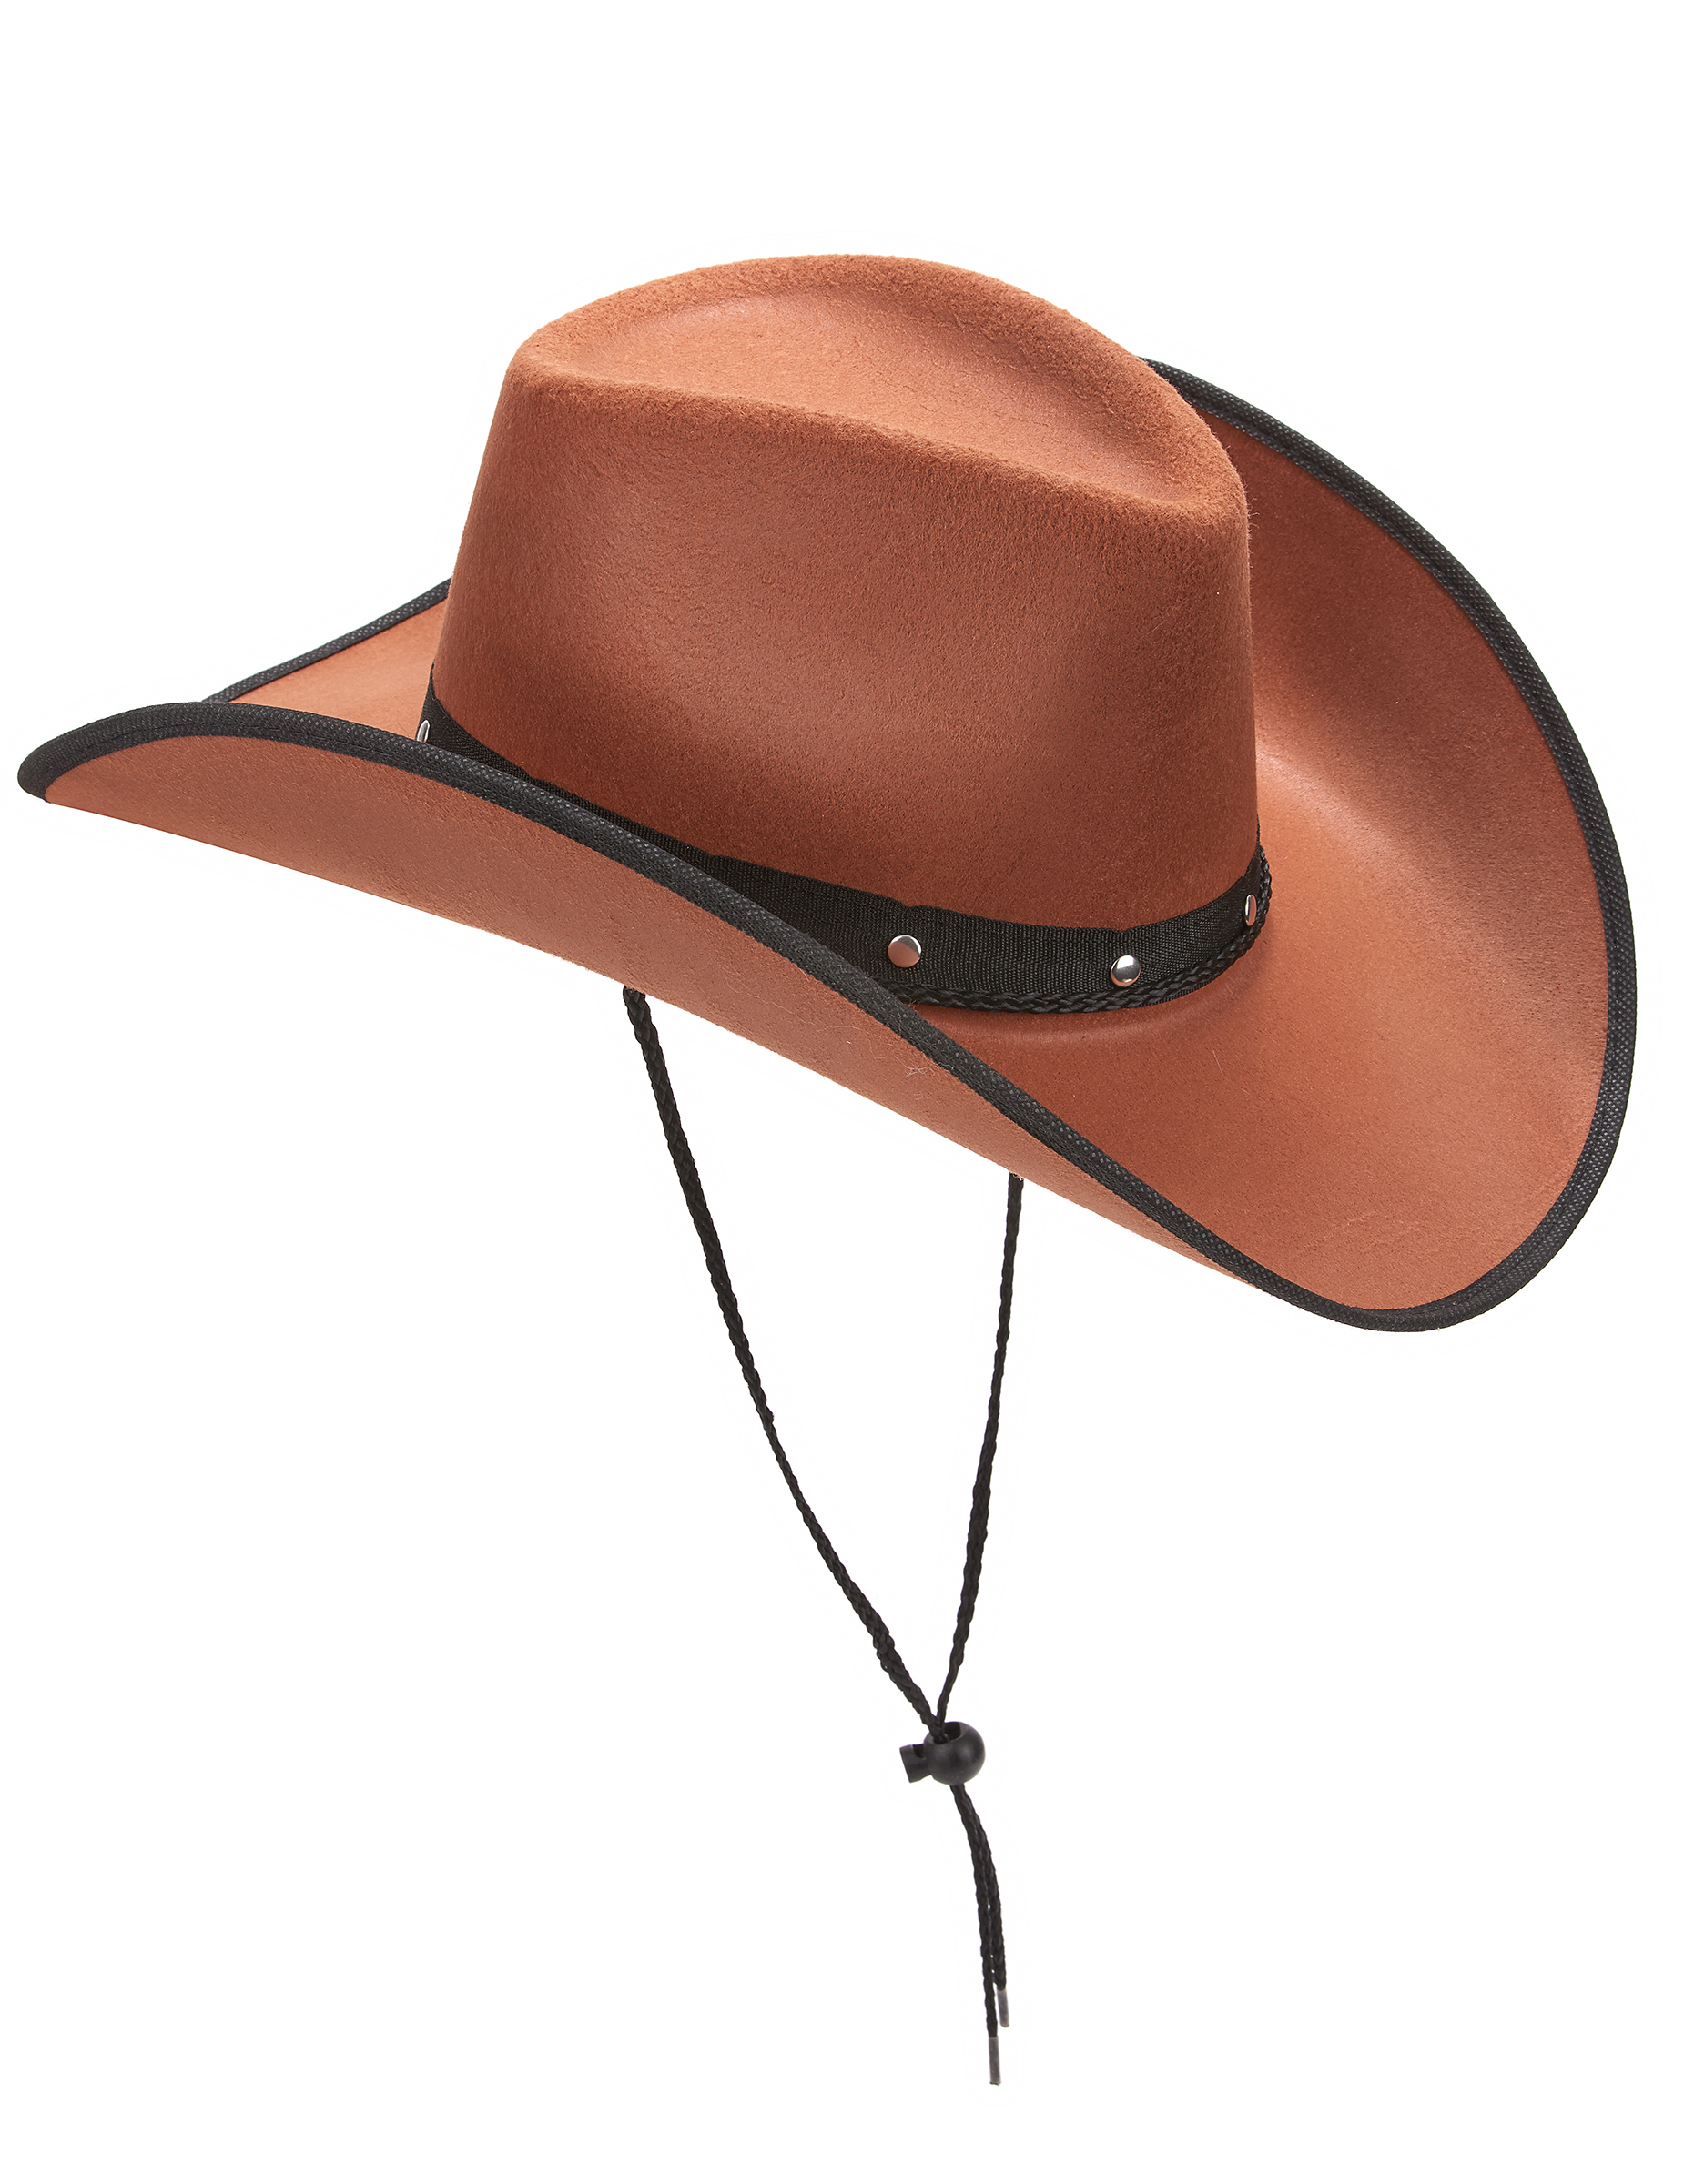 rechercher l'original super service conception populaire Chapeau cowboy marron à bordures noires adulte